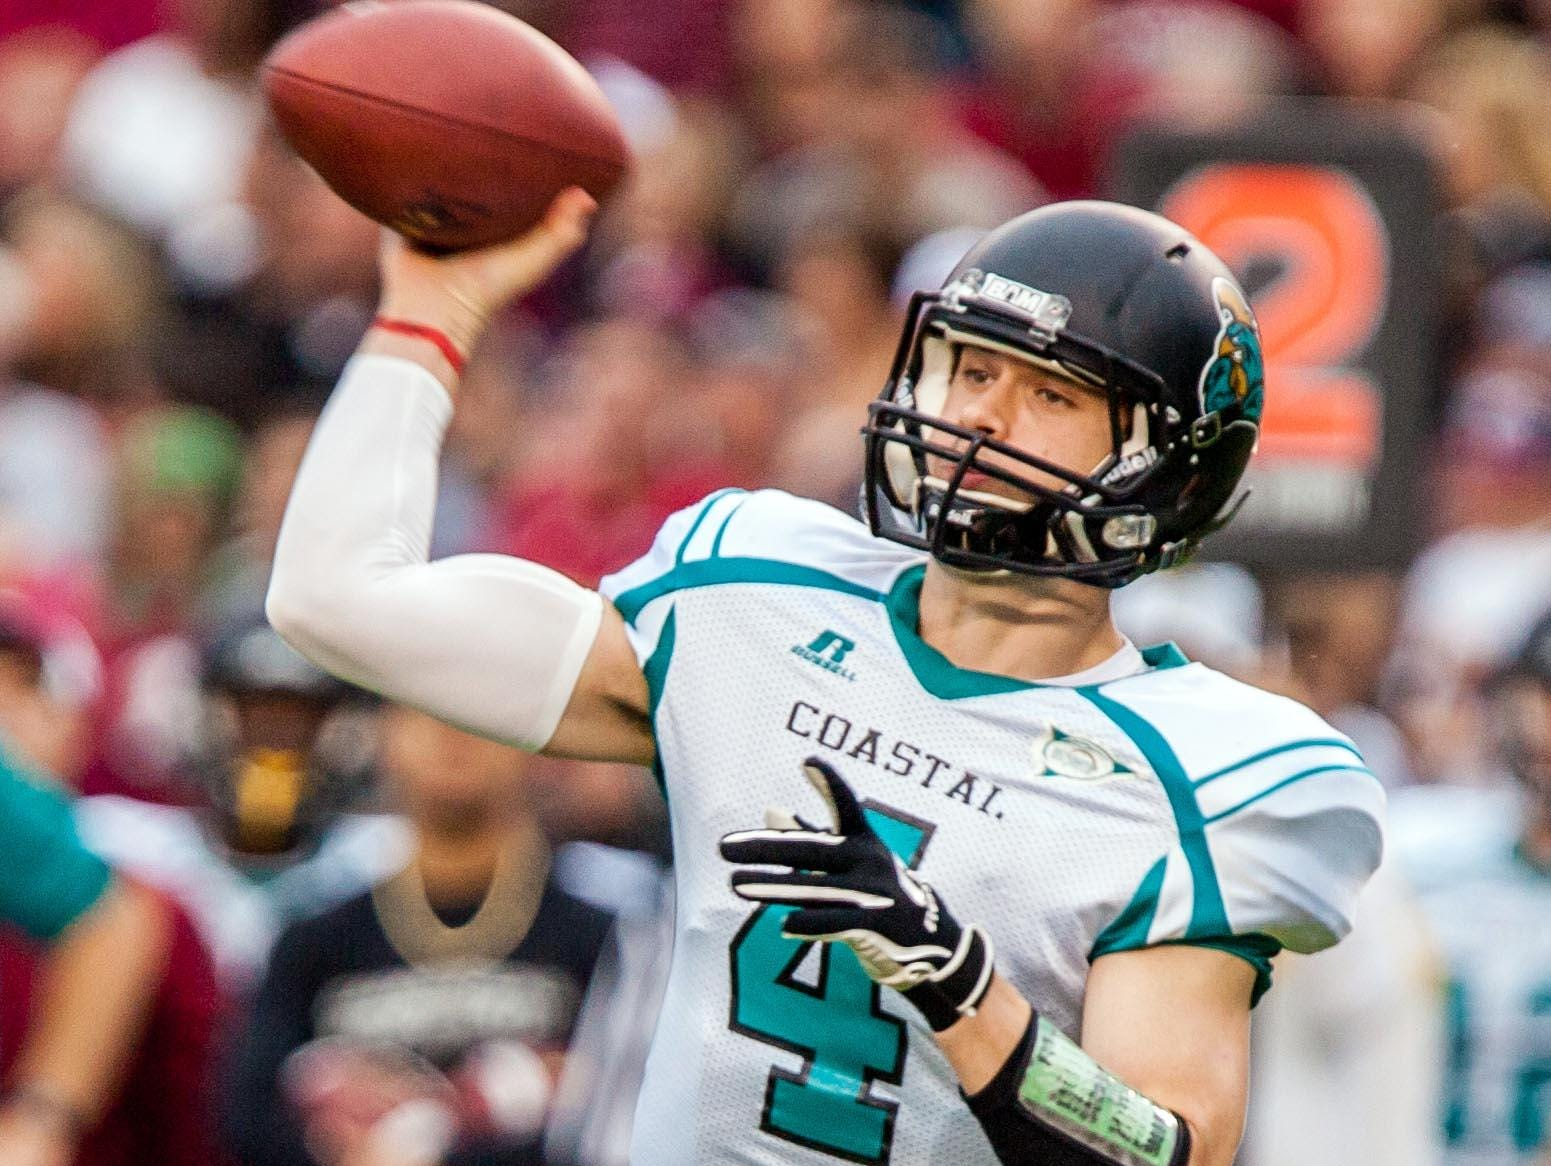 Quarterback Alex Ross helped Coastal Carolina to its second consecutive FCS playoff appearance in 2014.